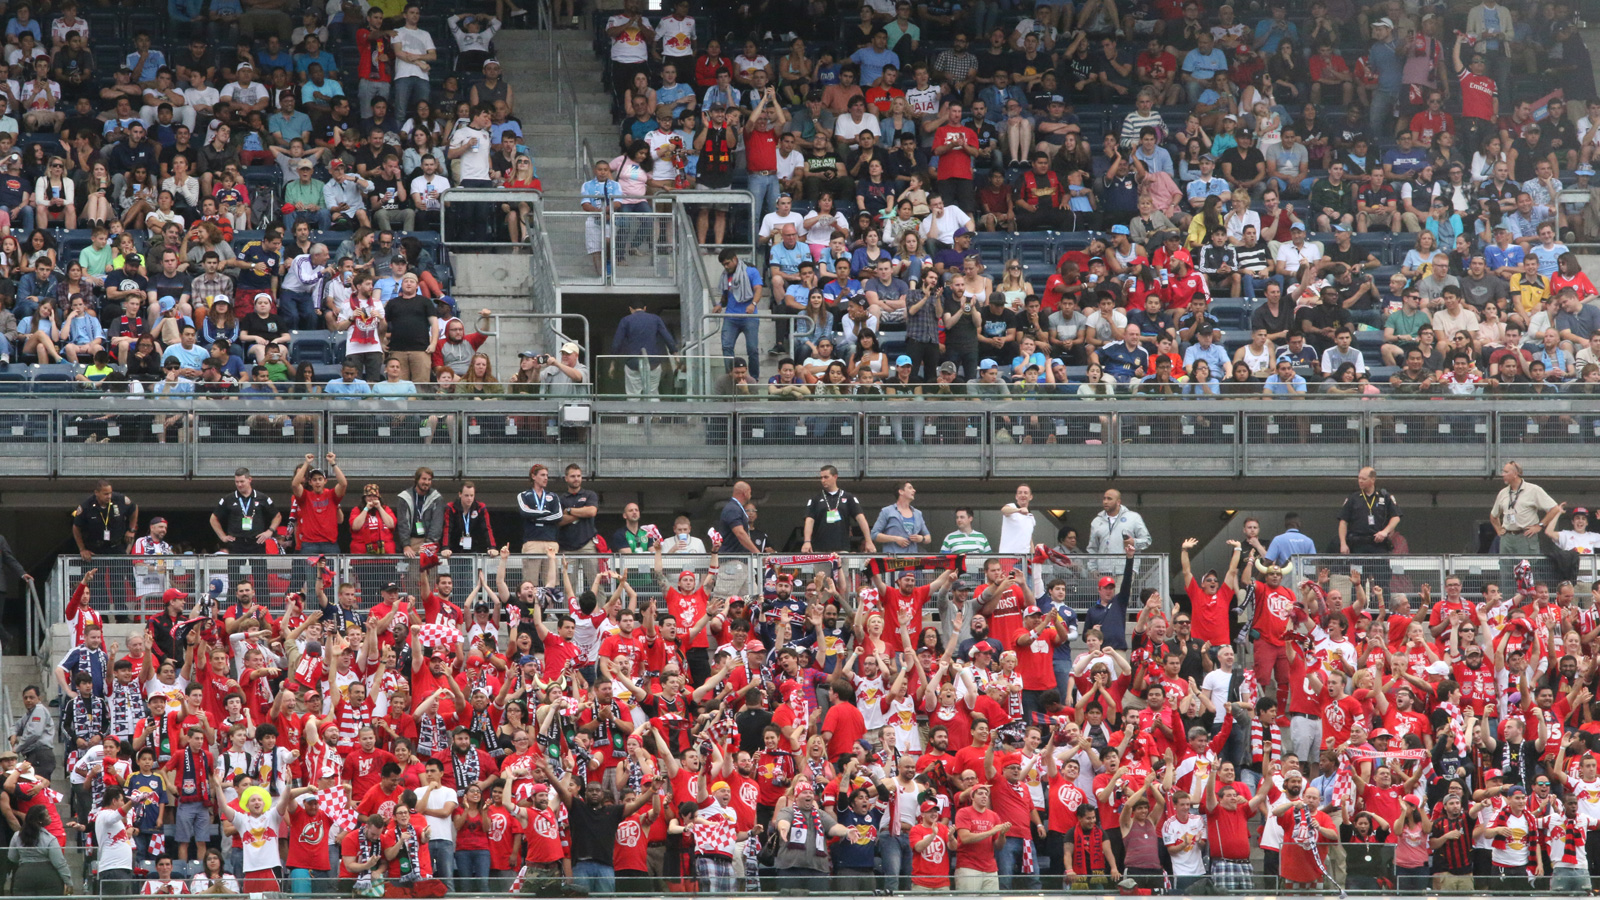 The traveling fans sitting in the New York Red Bulls' supporters section at Yankee Stadium react to the third and final Red Bulls goal of the match, scored by defender Matt Miazga (20) in the 73rd minute of a 3-1 road win over NYCFC.